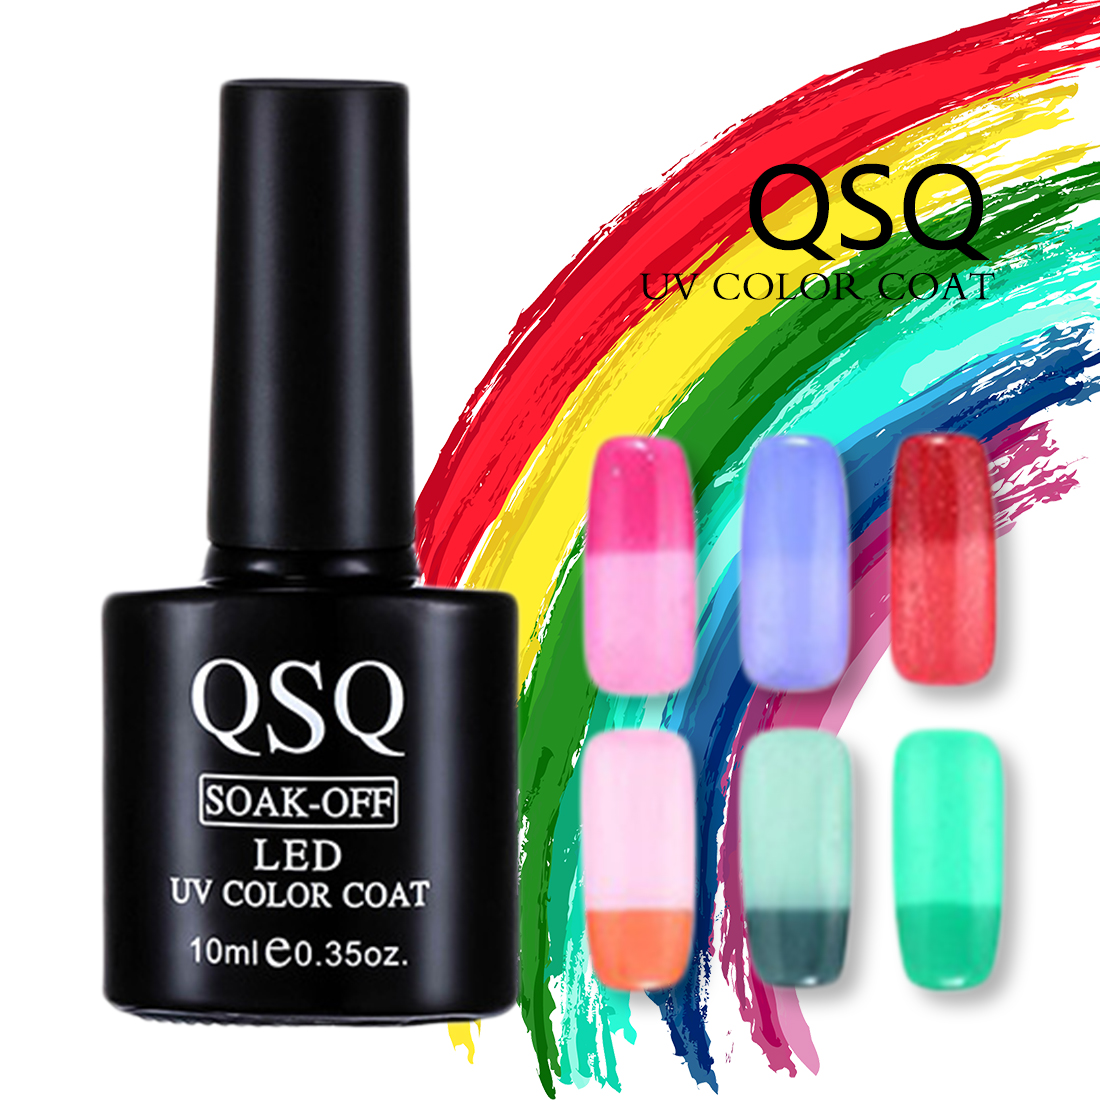 Nail Gel 1pcs Summer Hottest Sale 79 Color Uv Led Nail Gel Polish 7.3 Ml Nail Art Gel Varnish Products Are Sold Without Limitations